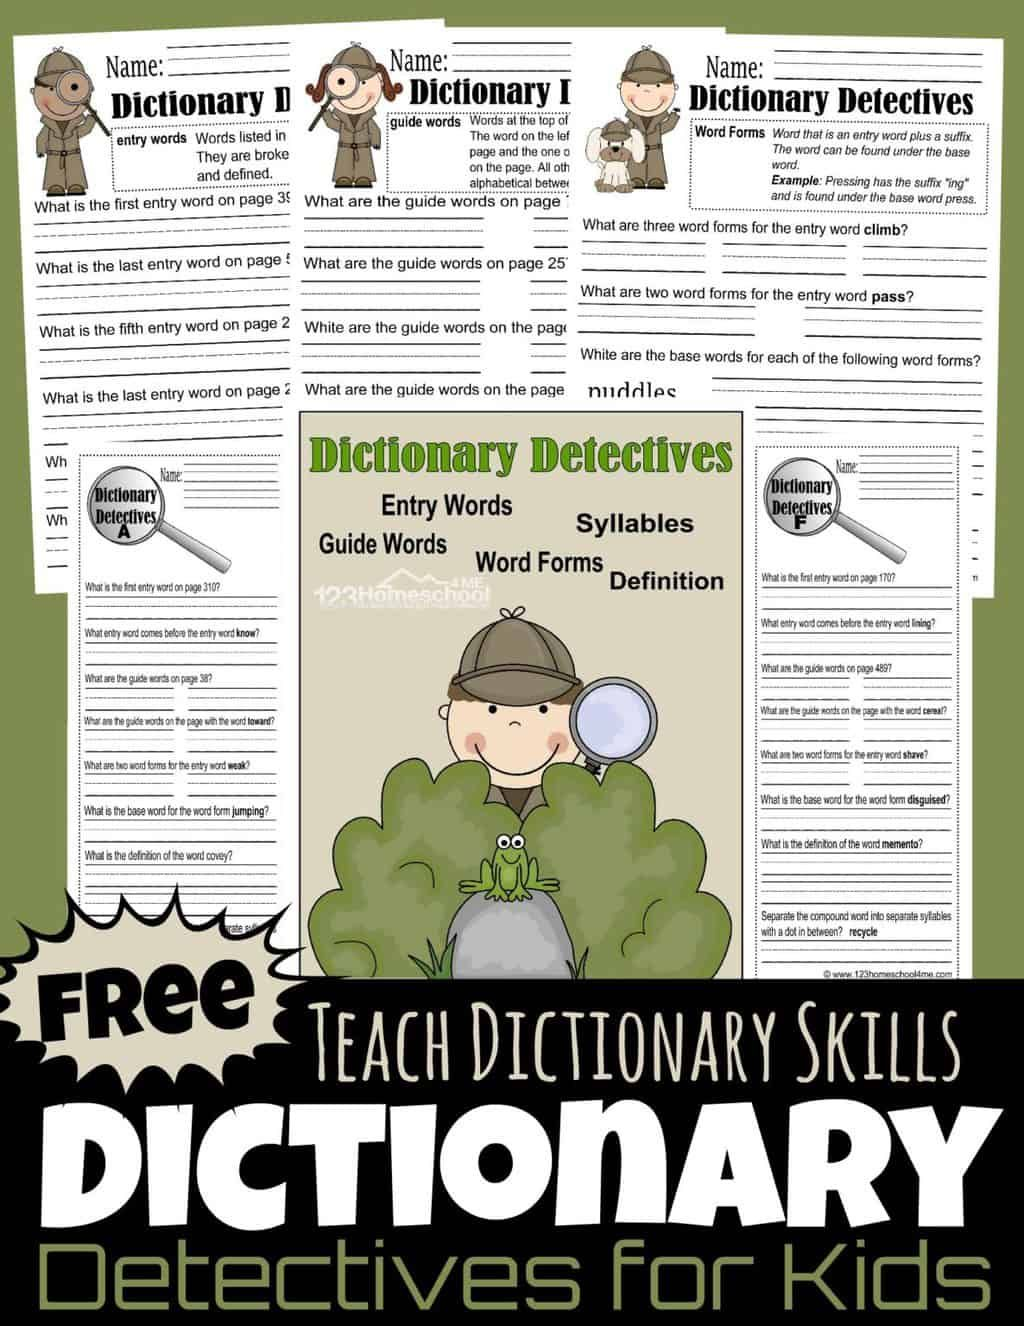 hight resolution of FREE Dictionary Detective Worksheets for Kids   Dictionary skills